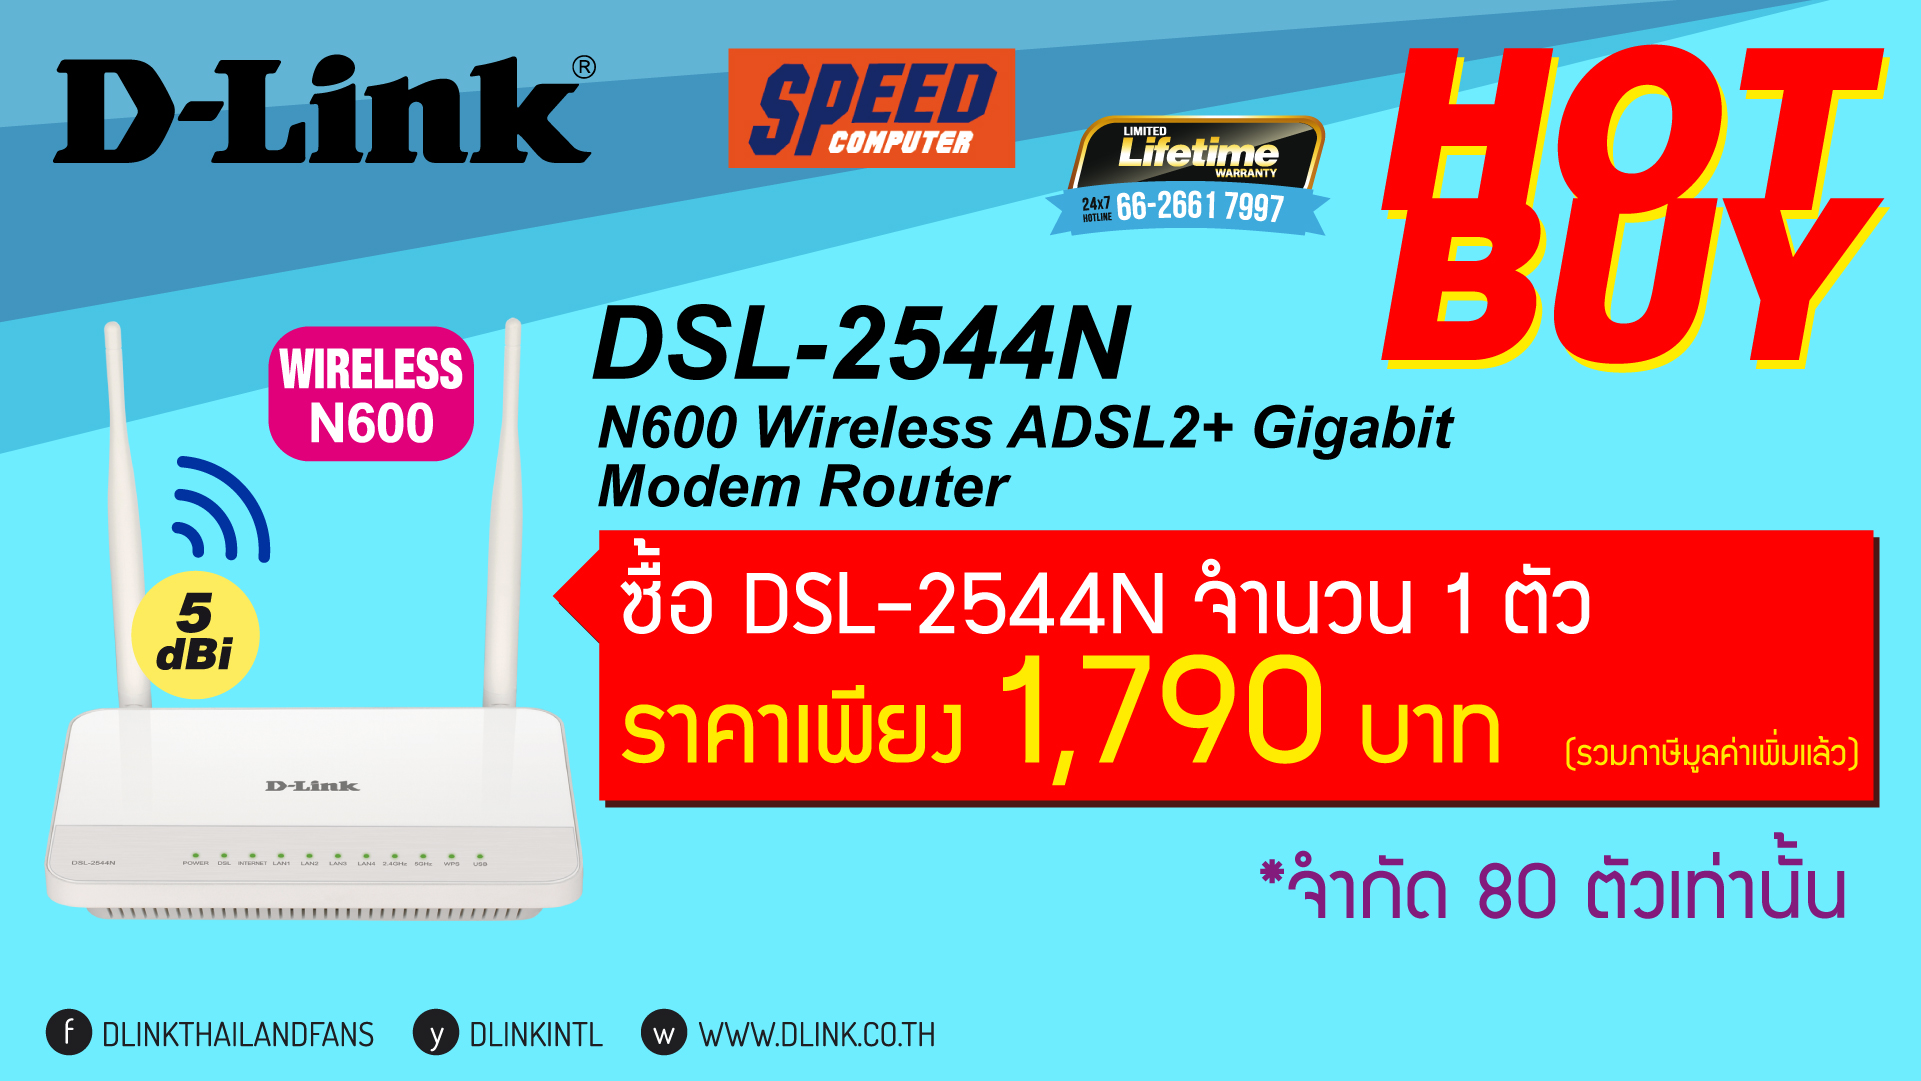 D-Link-Commart-Screen-for-Speed-March-16-06